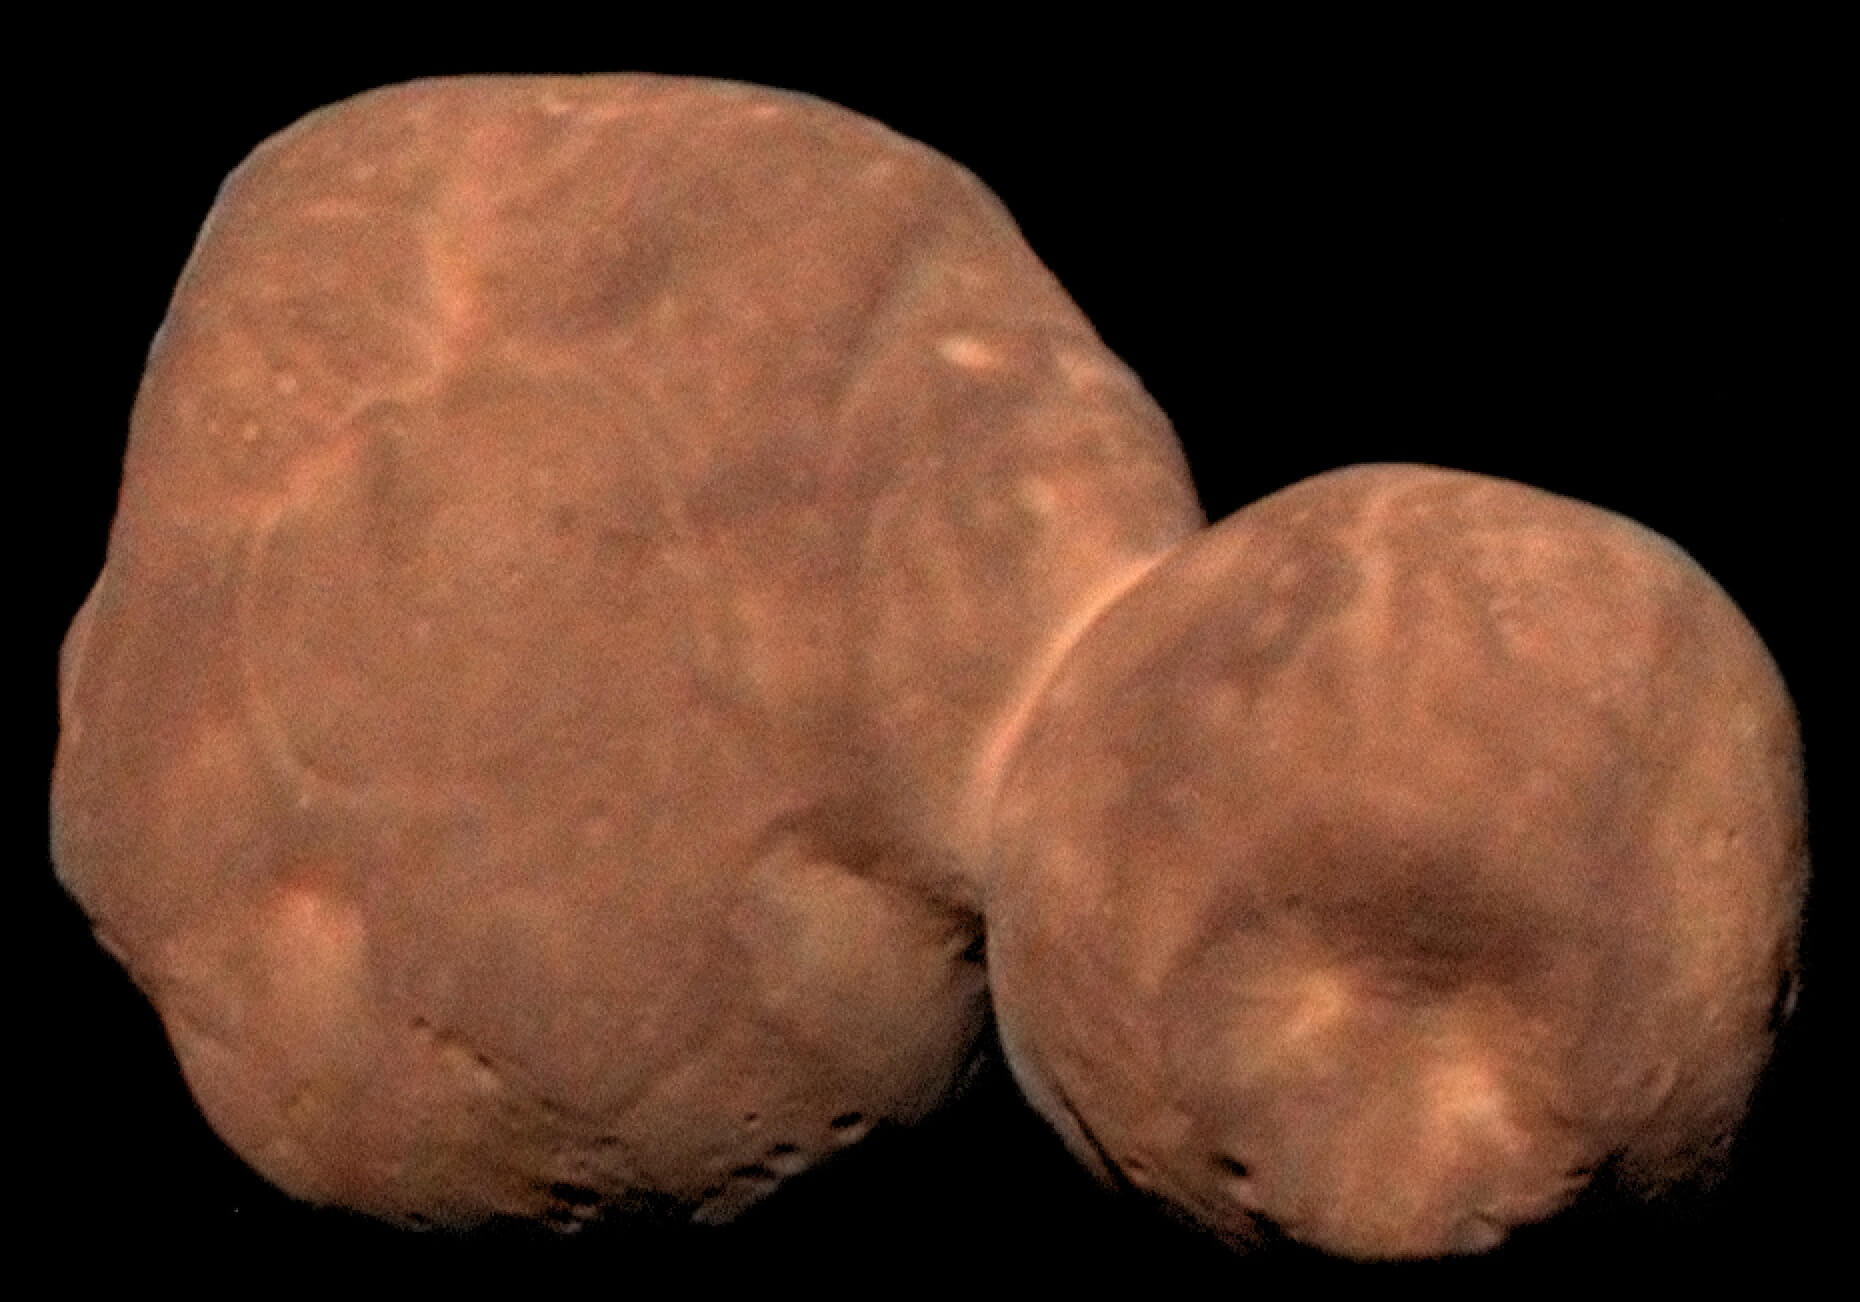 New Horizons has received new information about the formation of planets